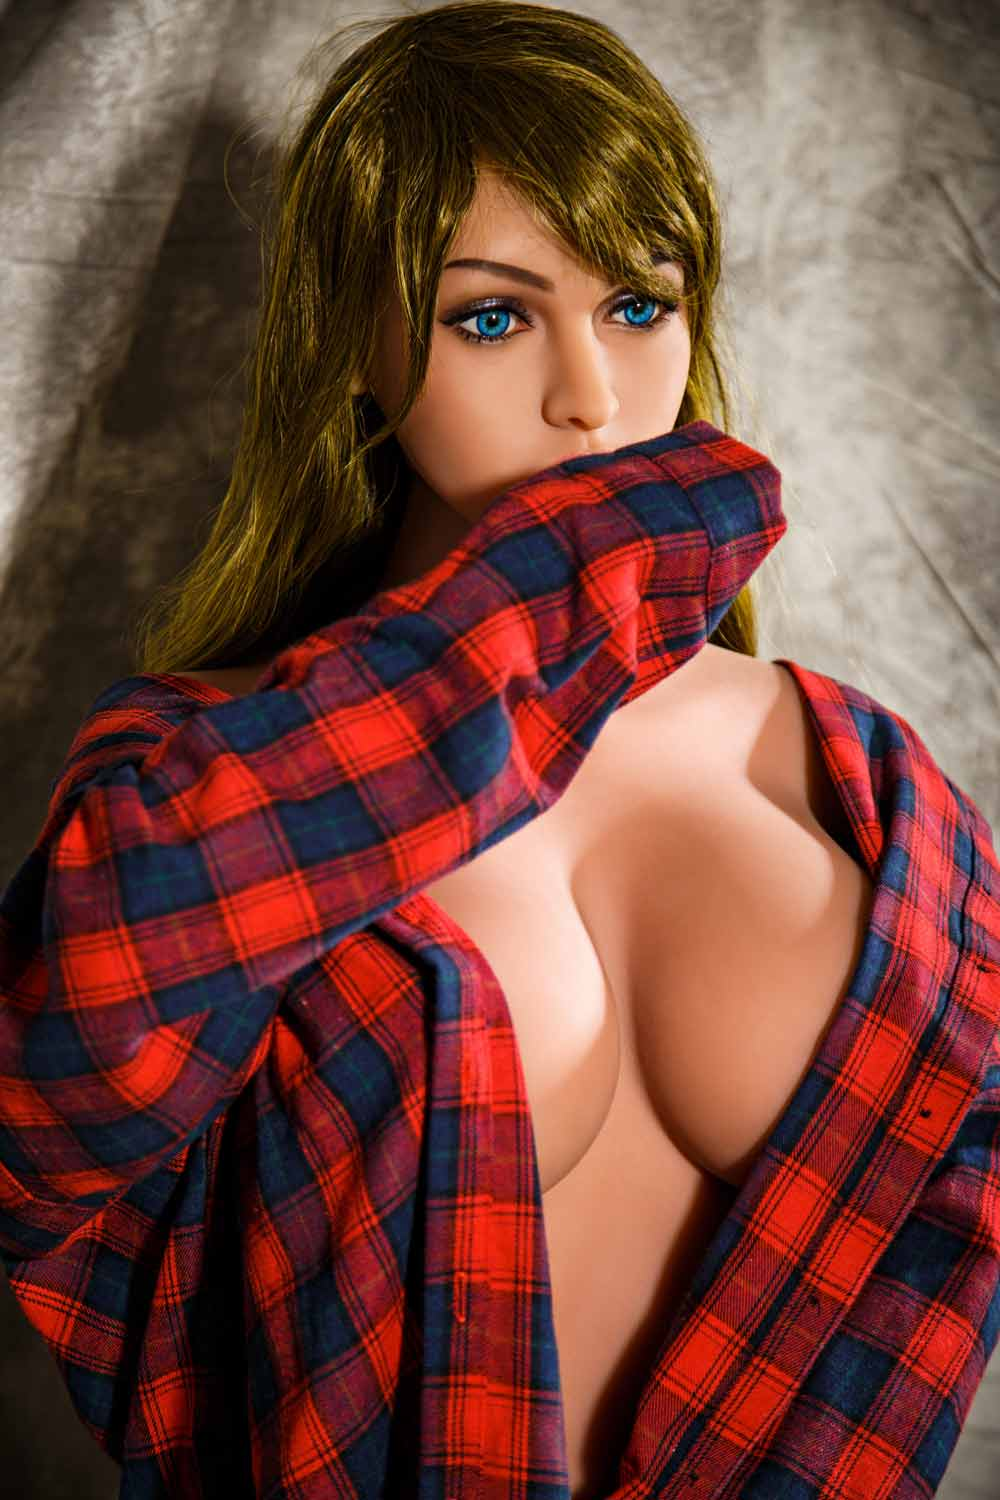 Sex doll in red shirt